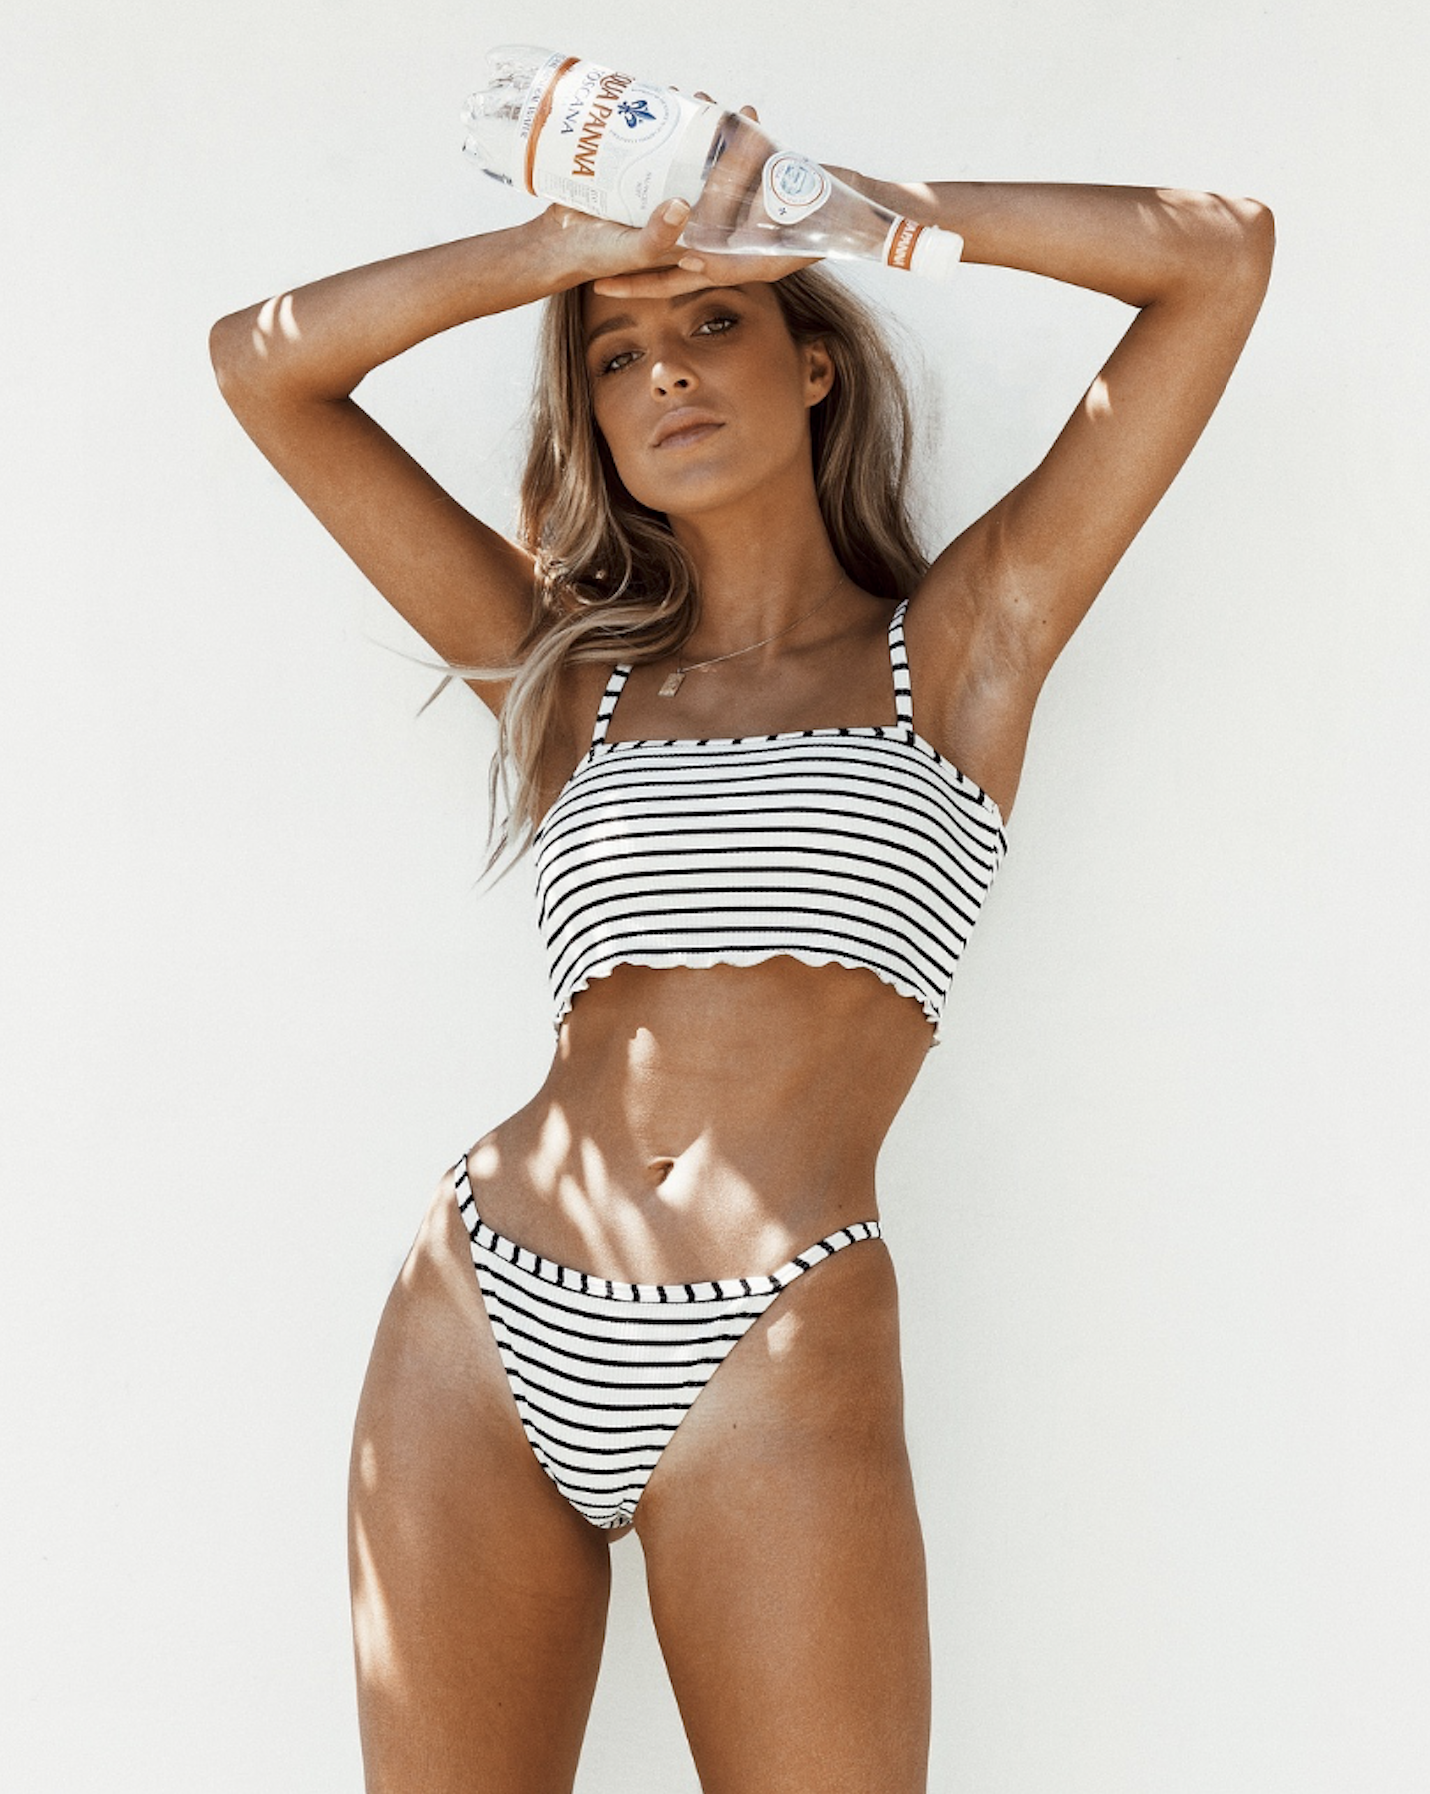 34937f724ea89 21 Top Swimwear Brands You Need to Know About